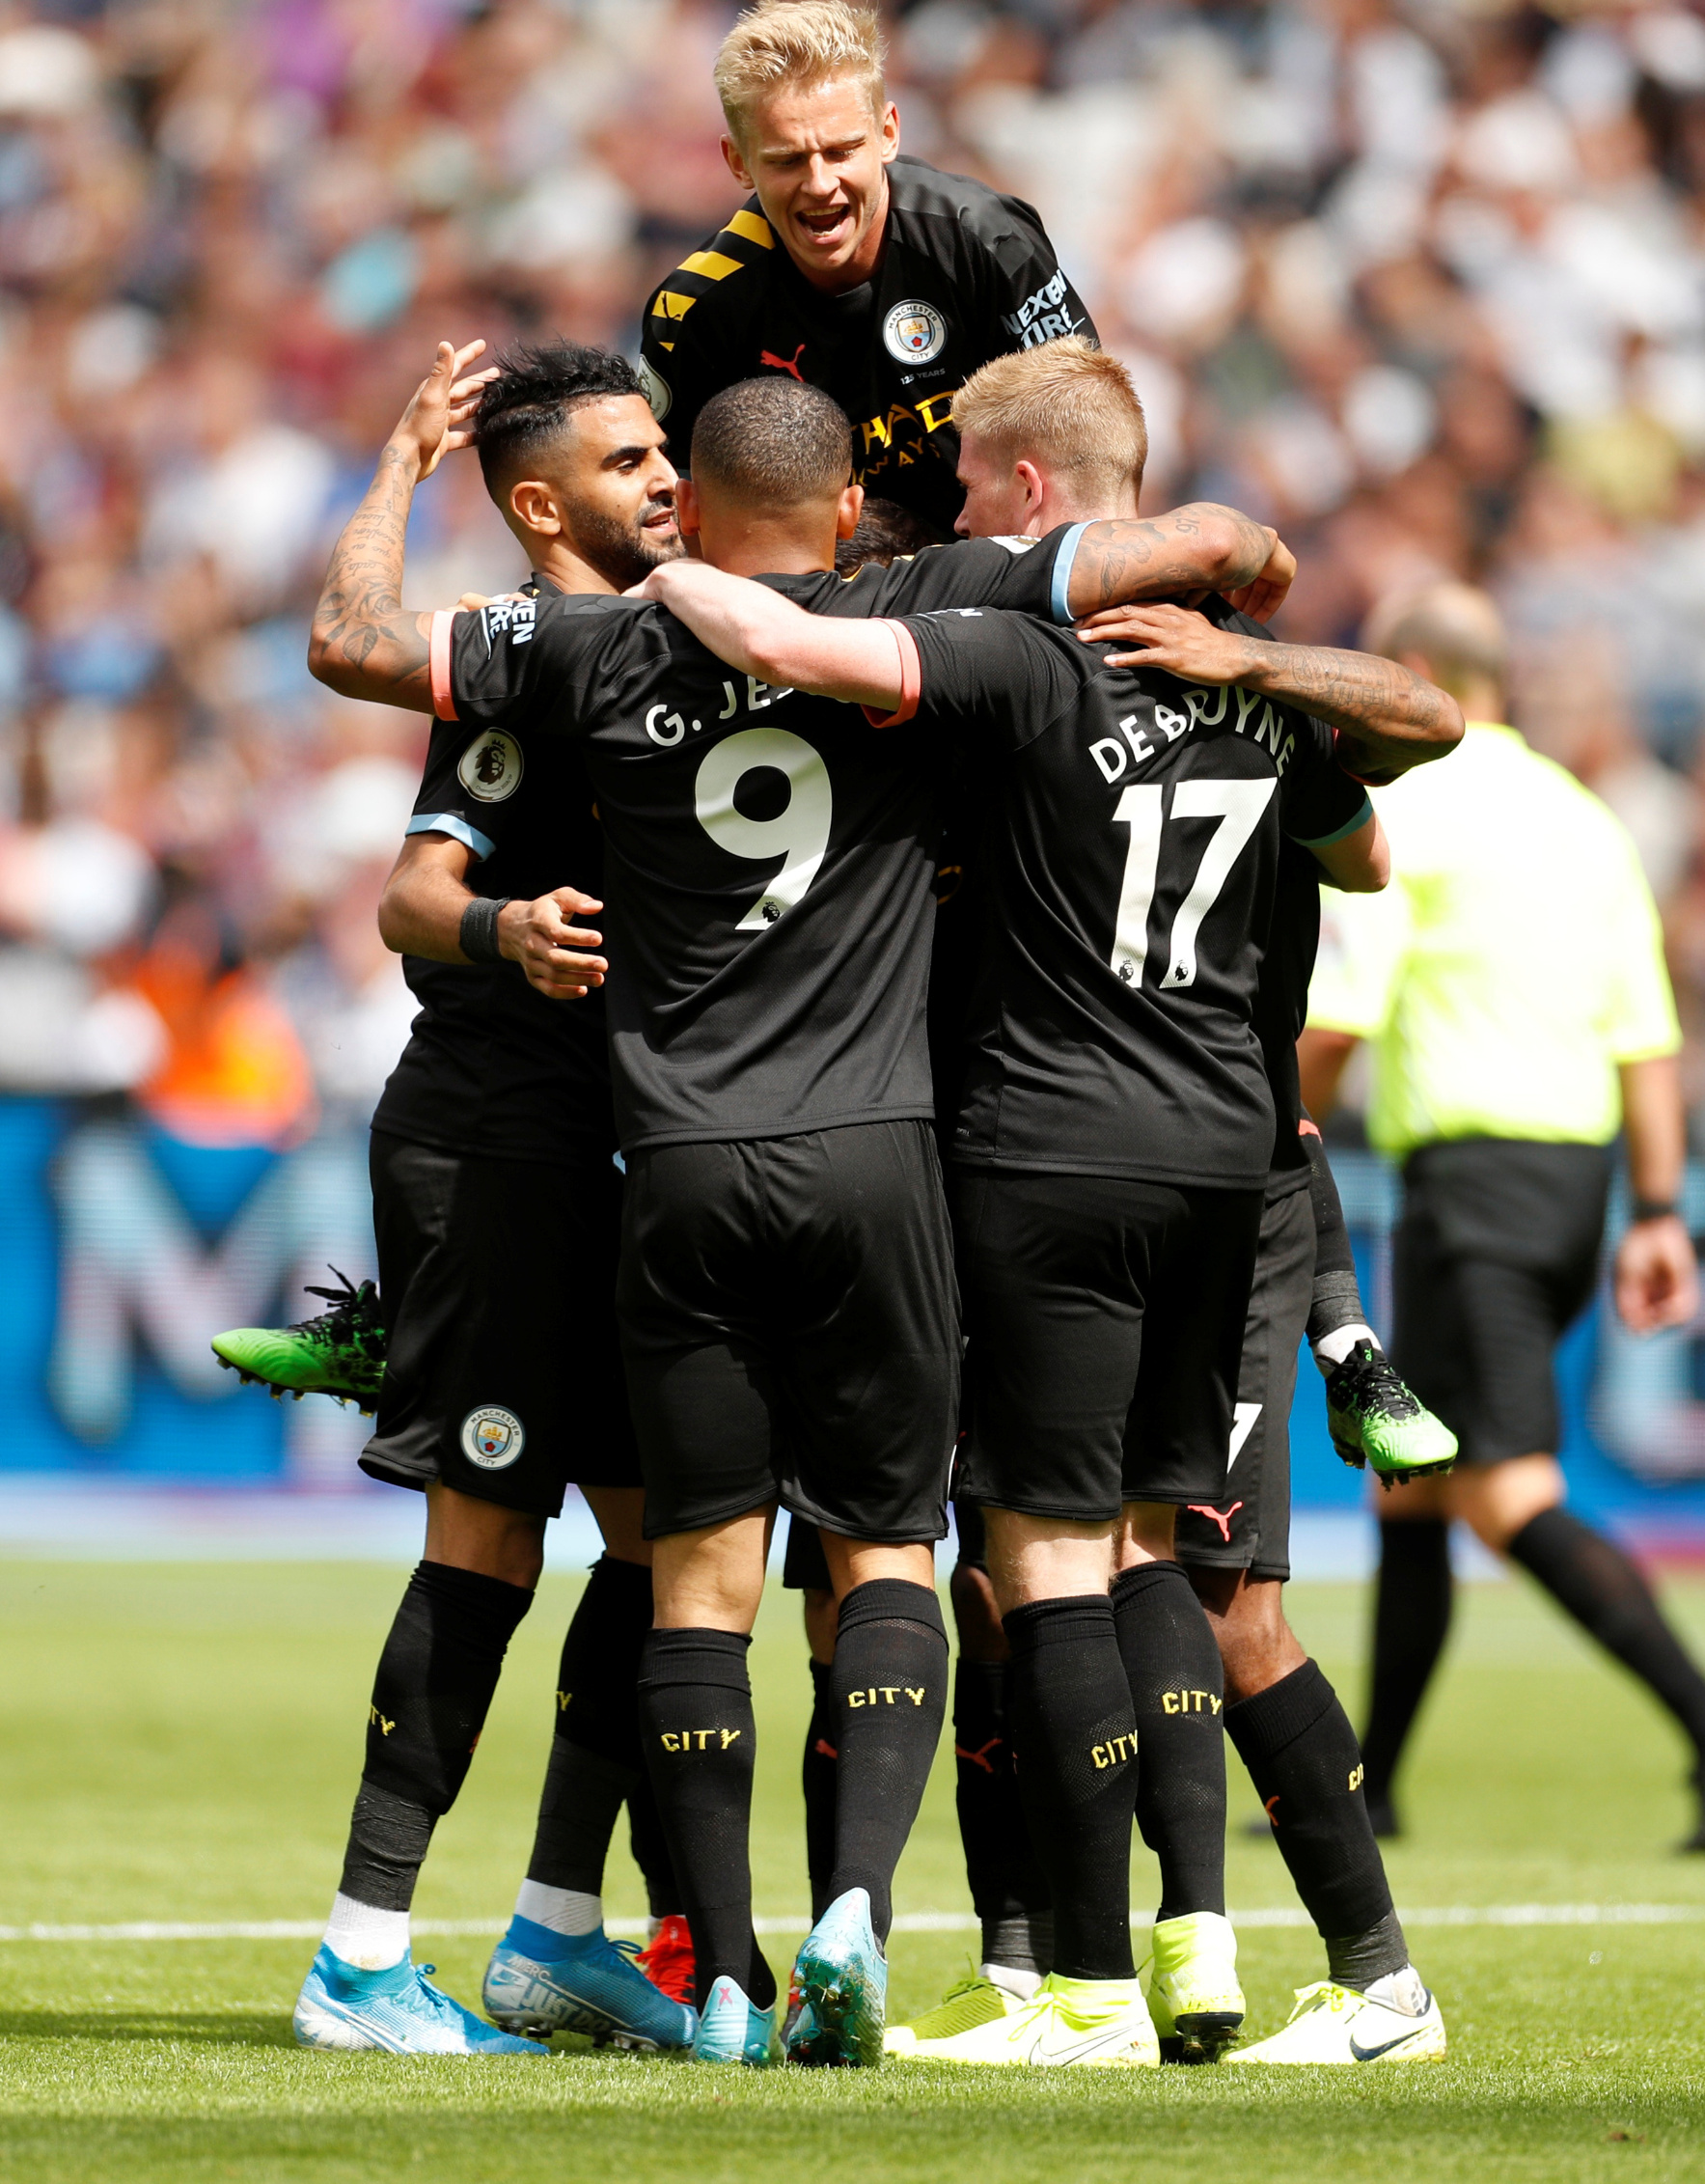 2019-08-10T124348Z_1686368296_RC1BF3EB4CD0_RTRMADP_3_SOCCER-ENGLAND-WHU-MCI-REPORT